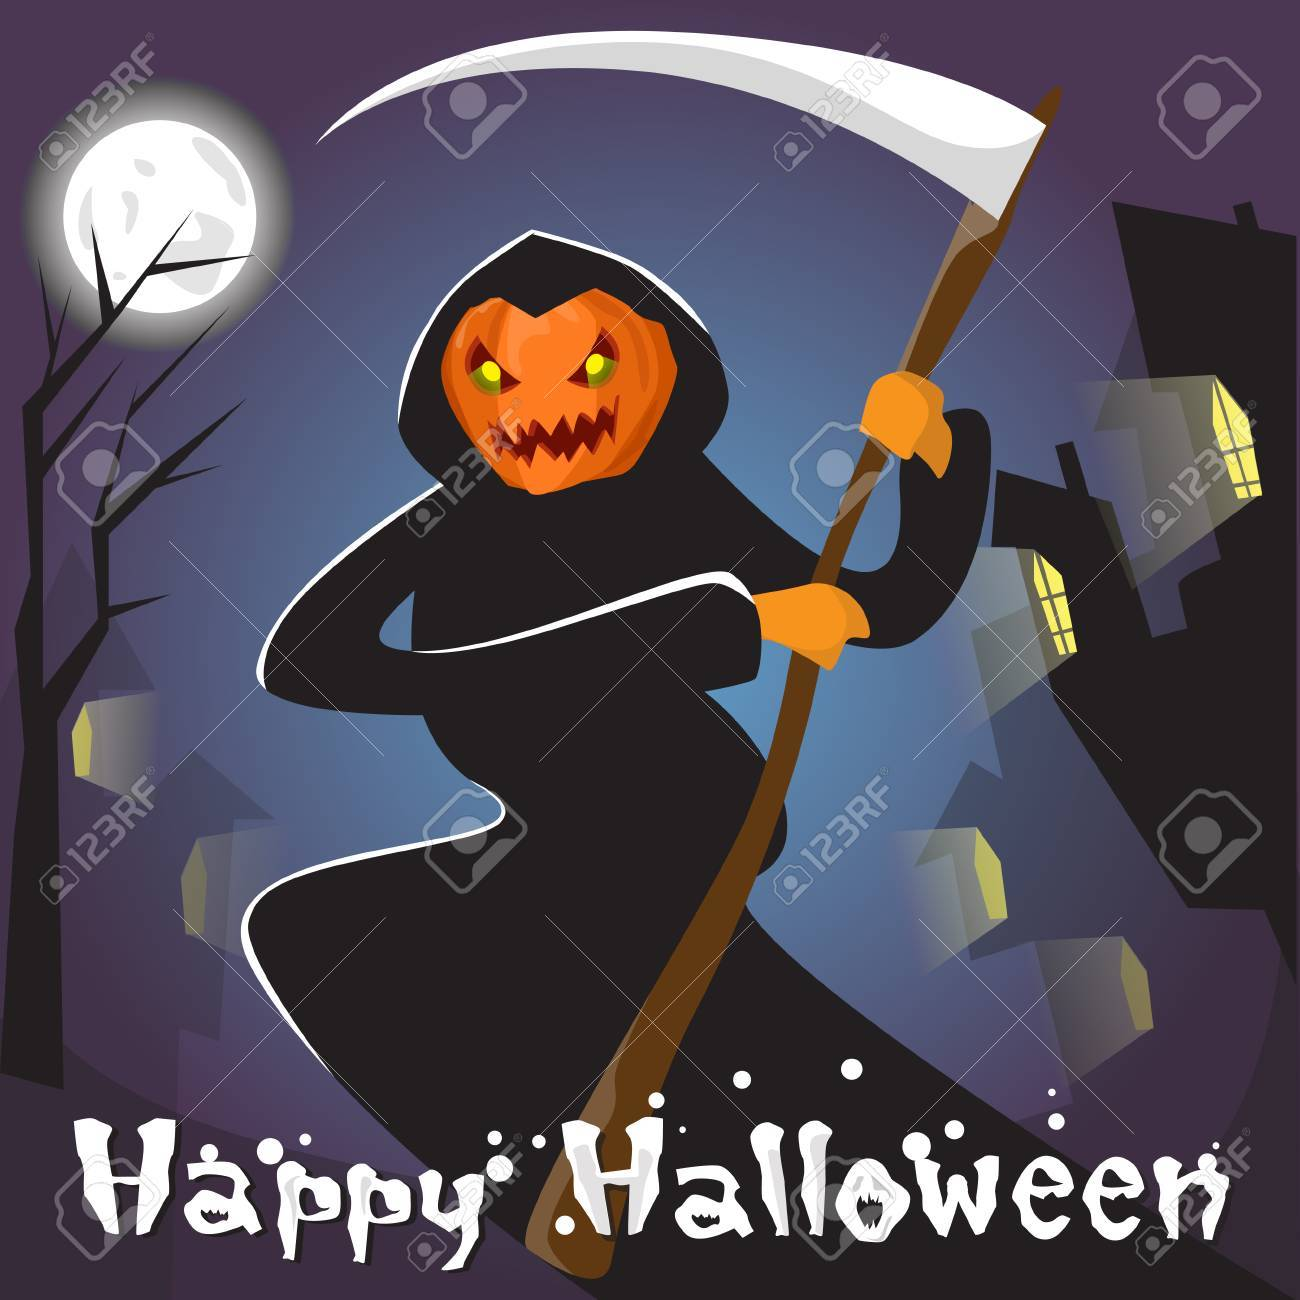 Grim Reaper With Pumpkin Face Hold Scythe Happy Halloween Banner Greeting Card Flat Vector Illustration Stock